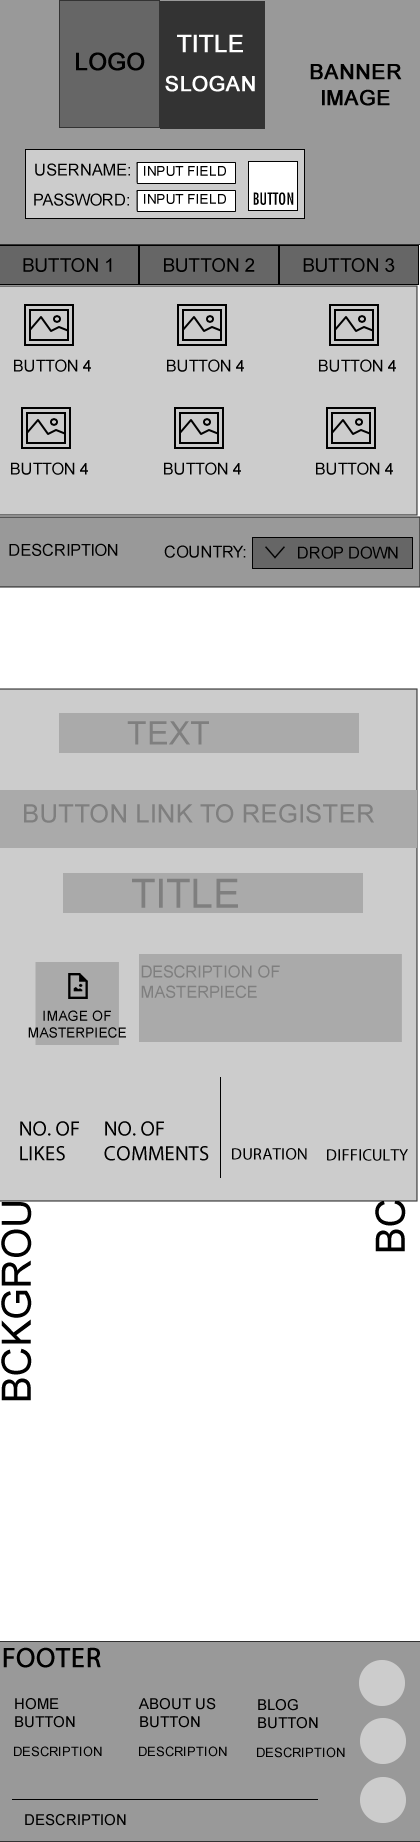 yumi-logged-out-mobile-WIREFRAME.fw